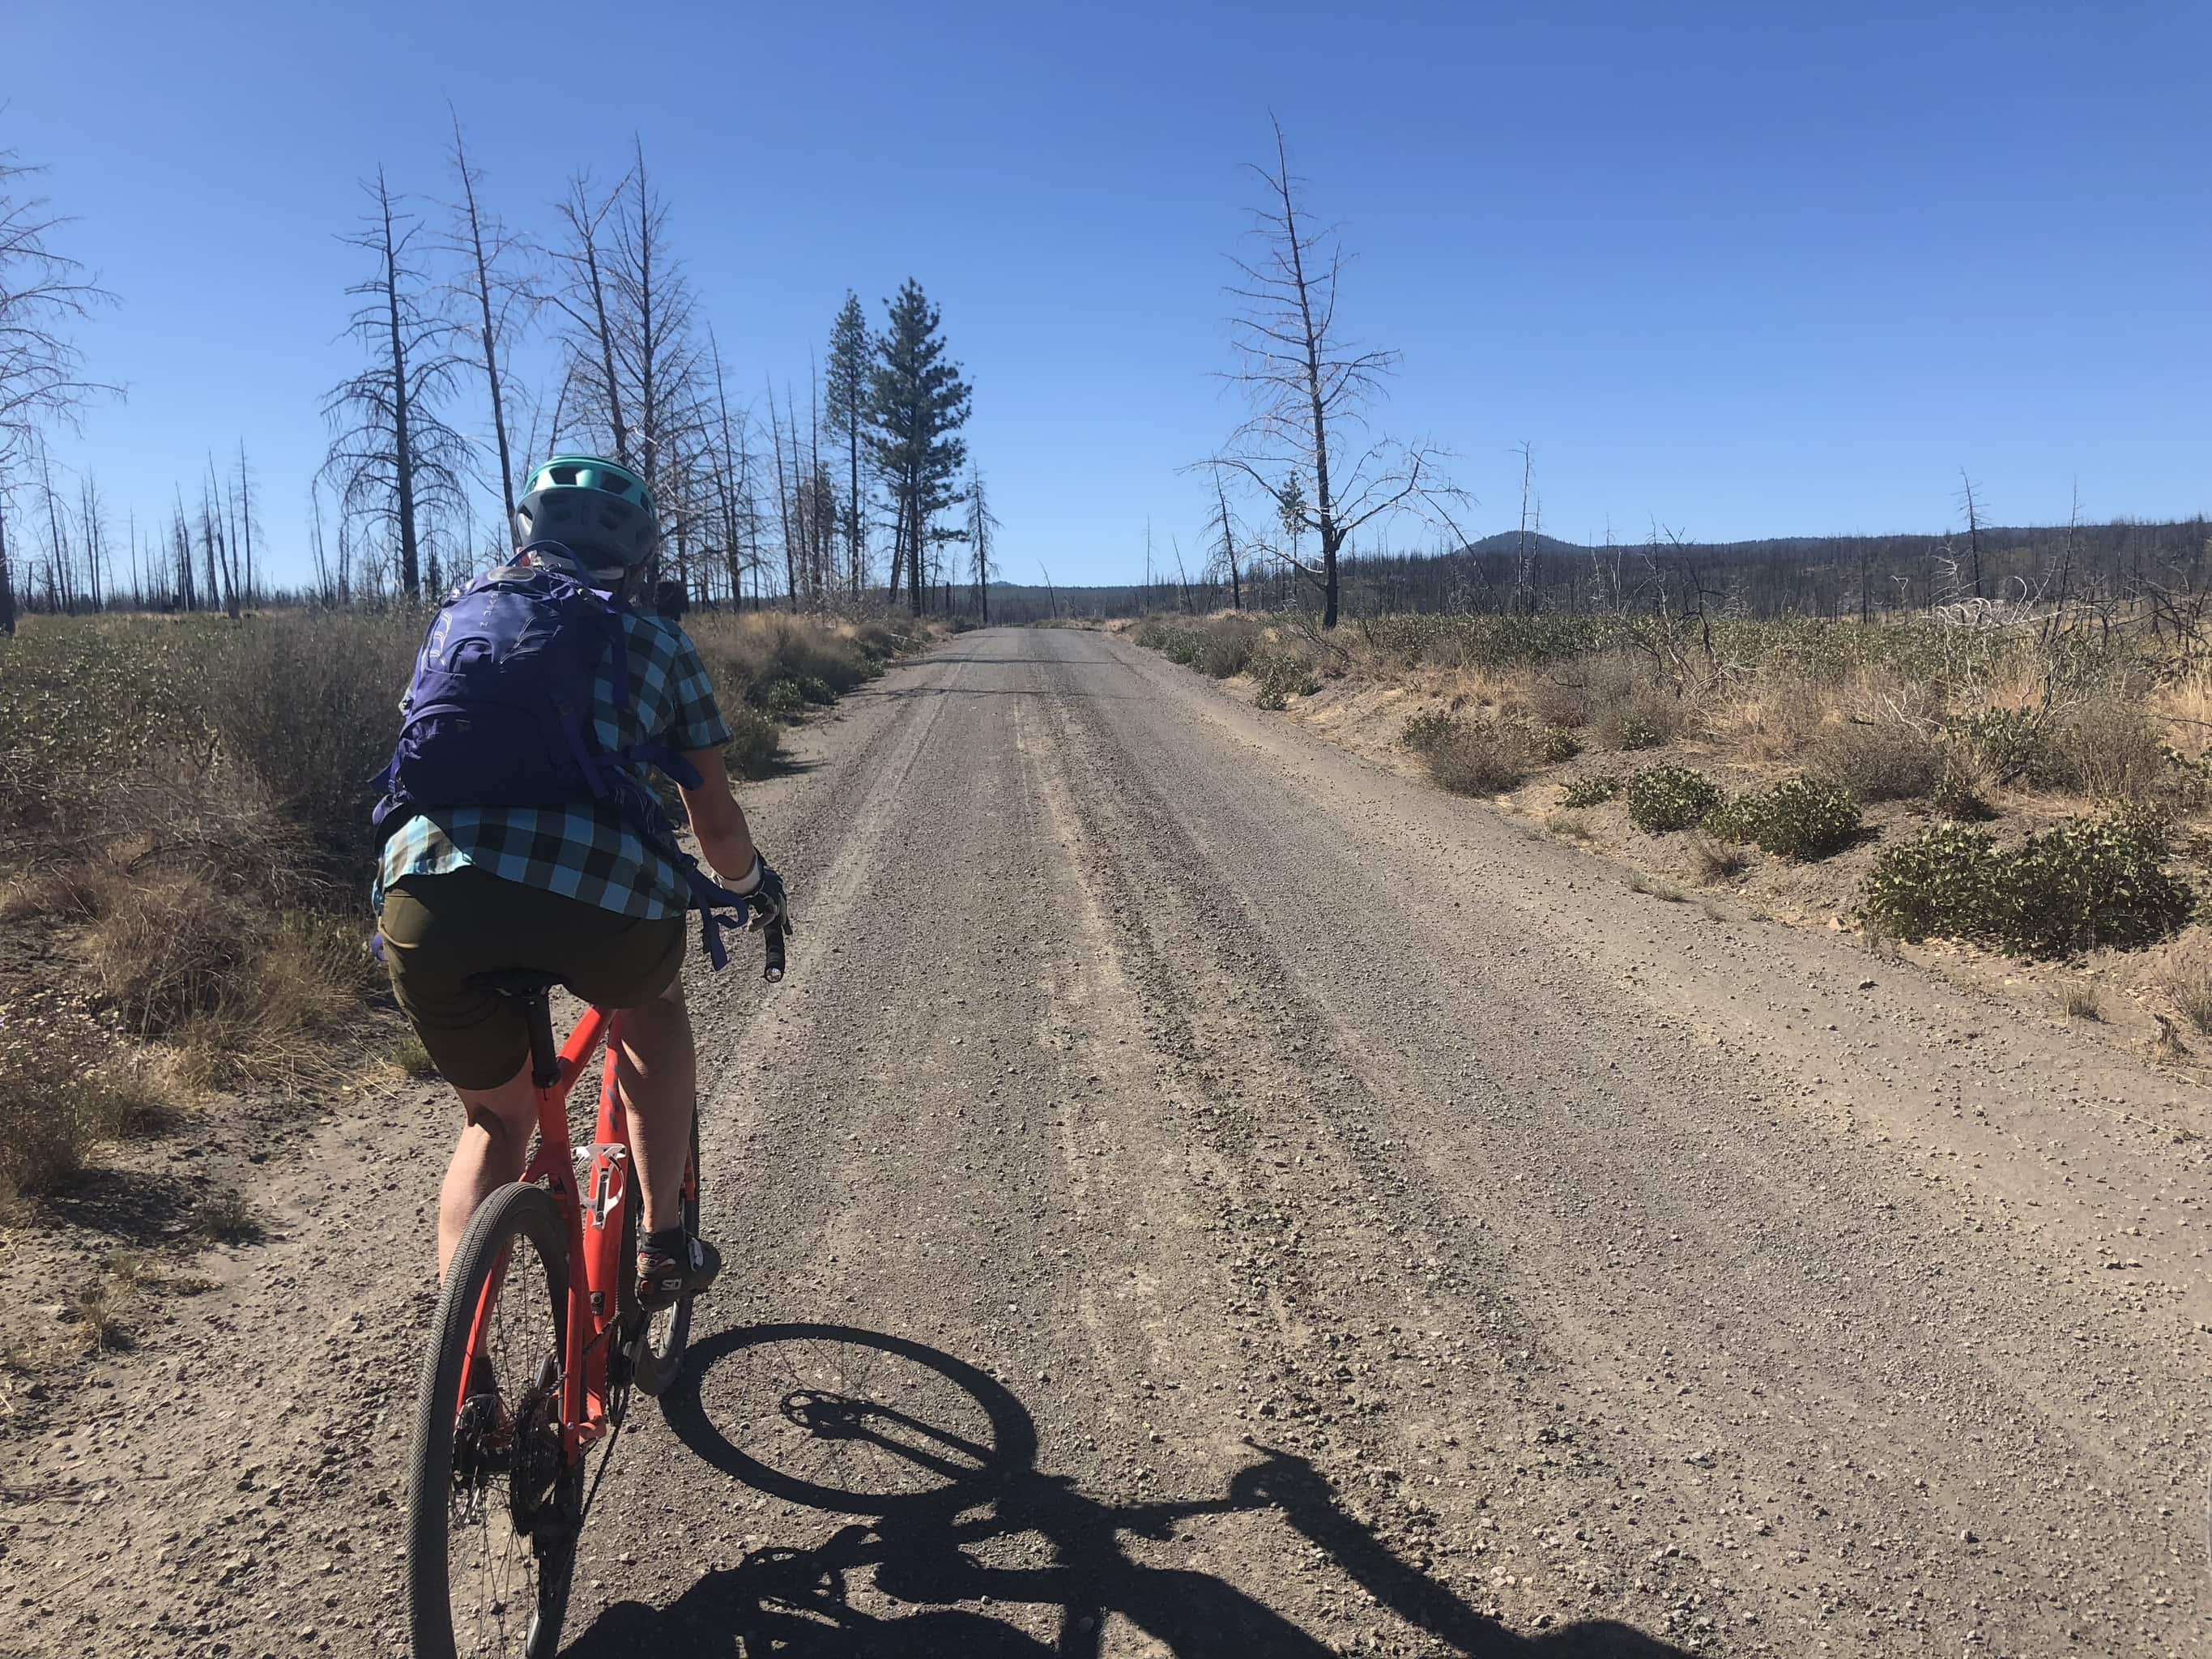 Woman cyclist riding gravel road through the Two Bulls fire area near Bend, OR.